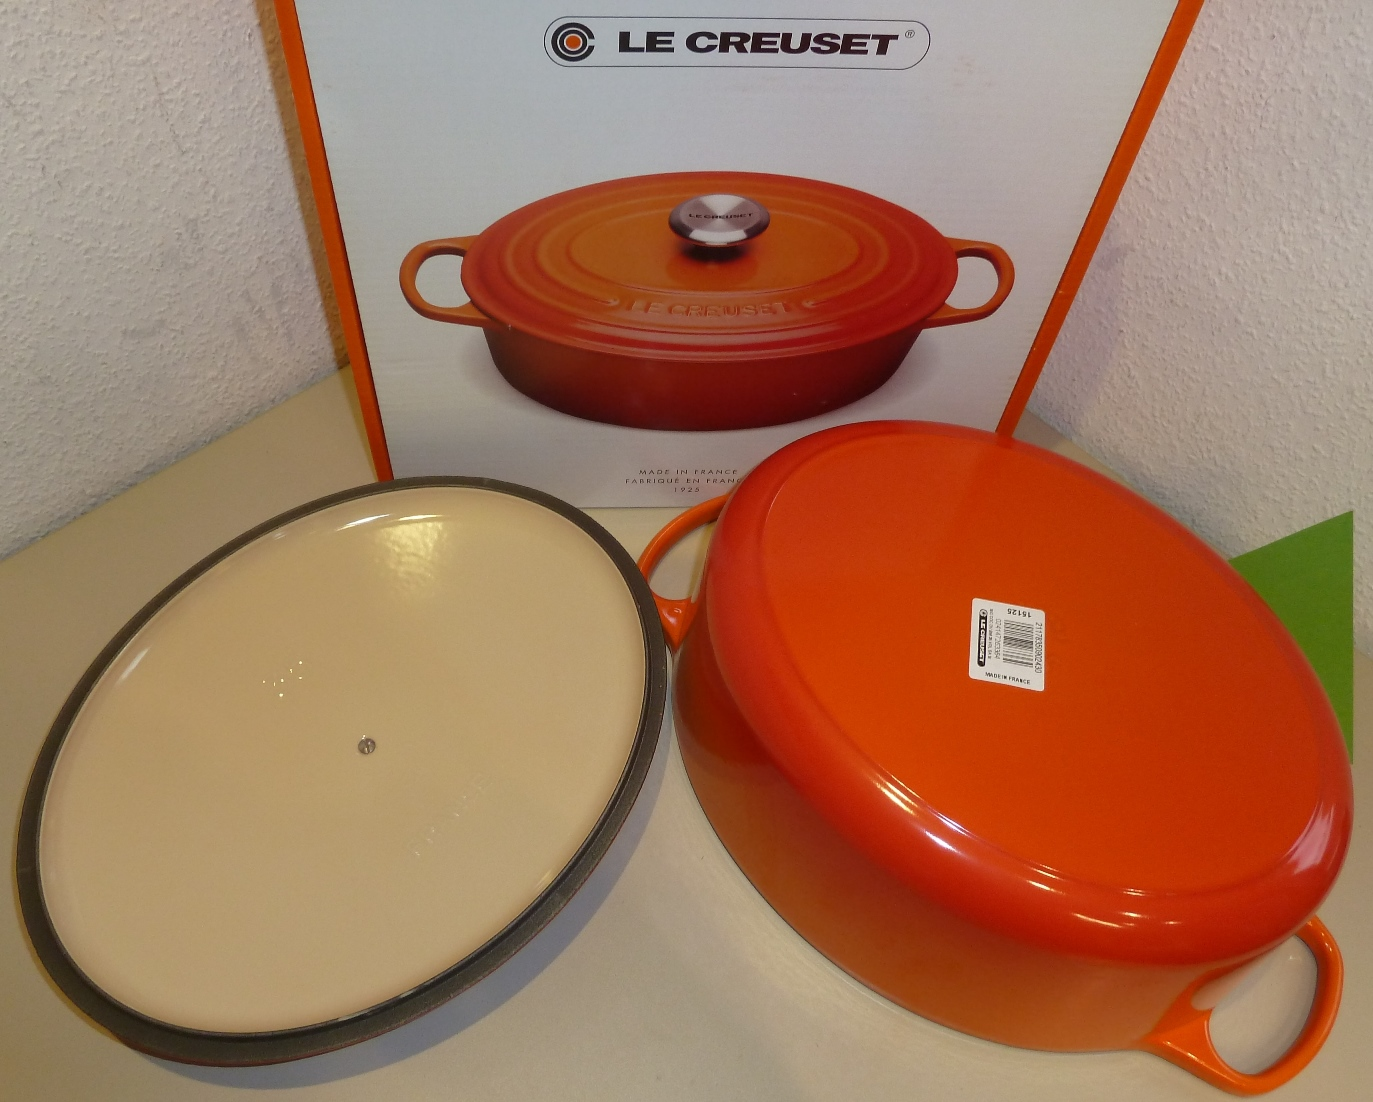 homann schenken kochen wohnen le creuset br ter signature 35 cm oval ofenrot induktion. Black Bedroom Furniture Sets. Home Design Ideas